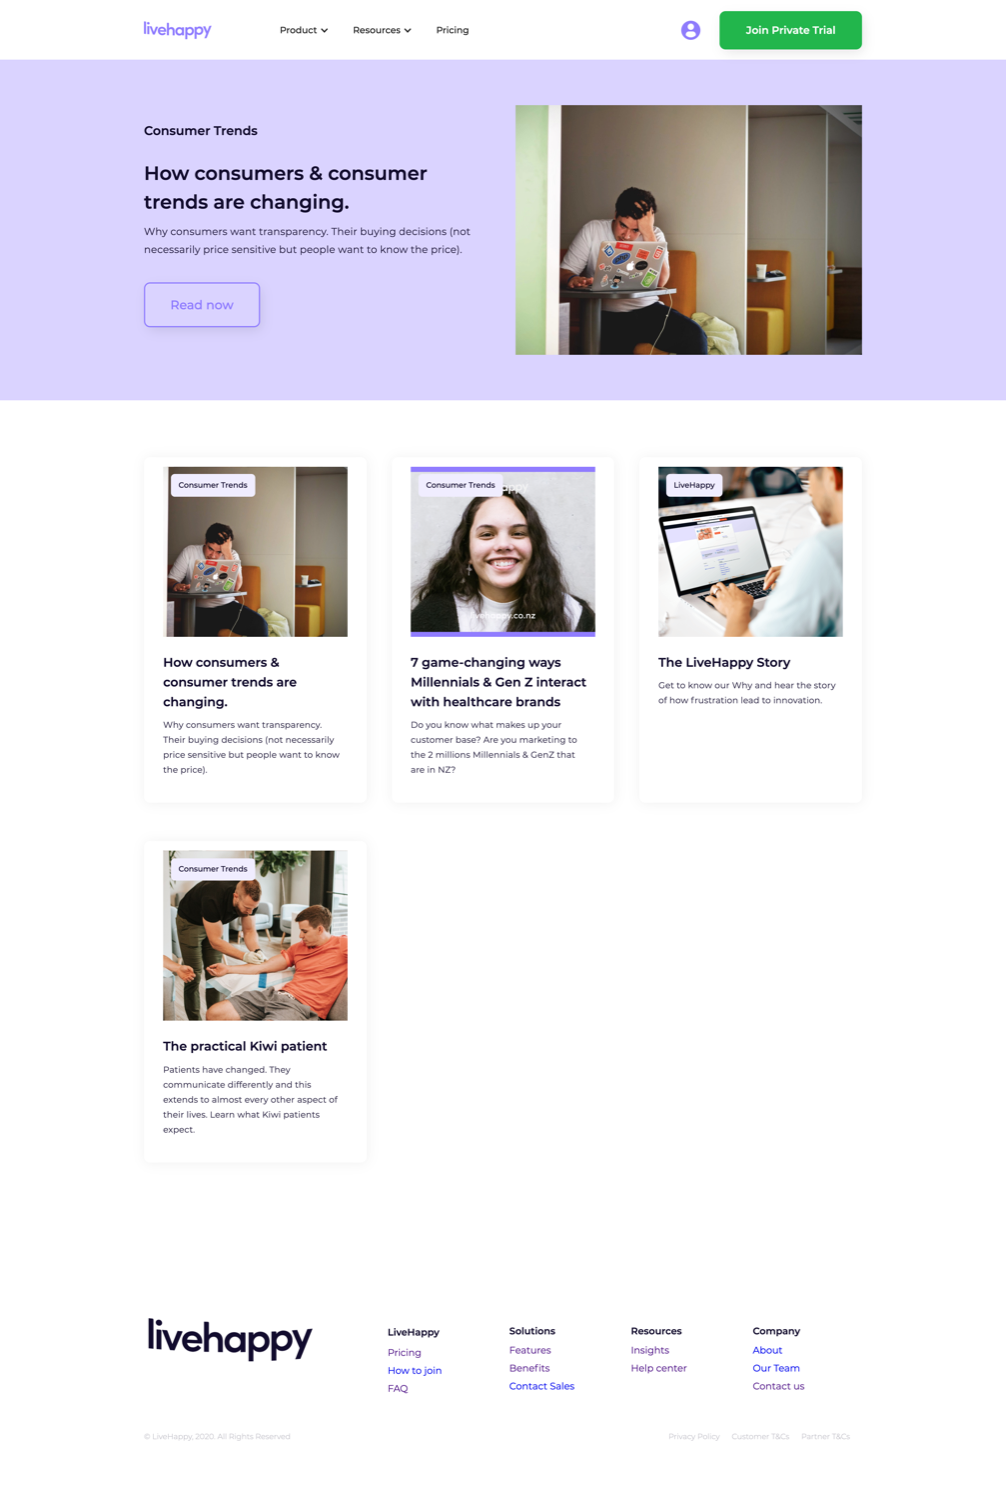 LiveHappy Insights Page   Whāngarei's most SIMPLE Website Agency – Say hello 👋 to the most SIMPLE creative experience in Northland. – Web & Graphic Design Whangarei   Kerikeri   Bay of Islands   Rodney   Kaitaia   Far North